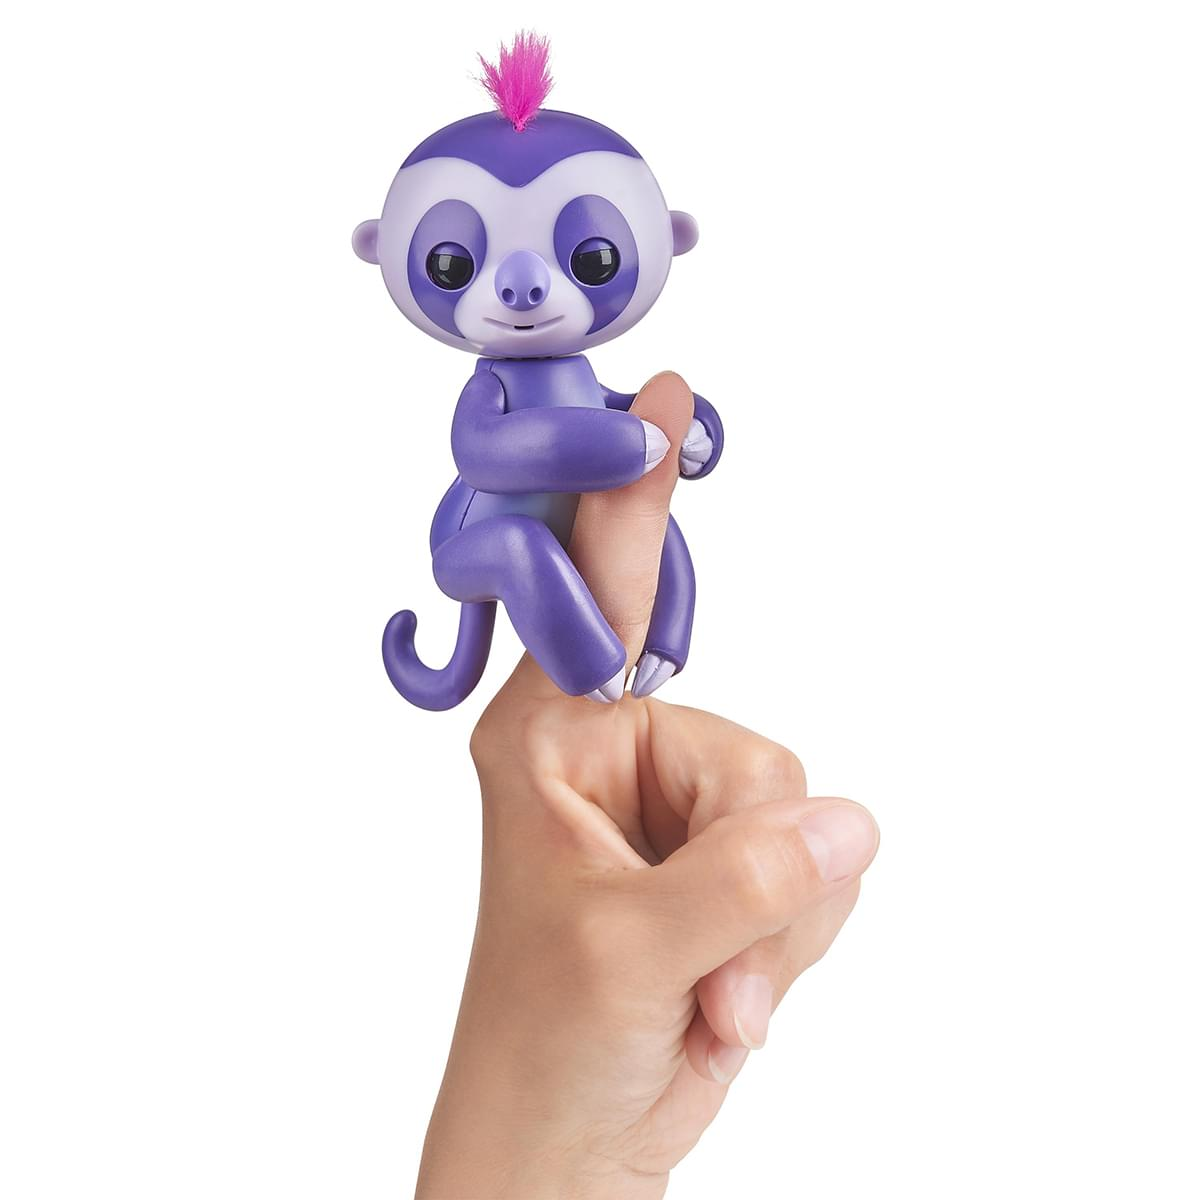 WowWee Fingerlings Interactive Baby Sloth Toy: Marge (Purple)